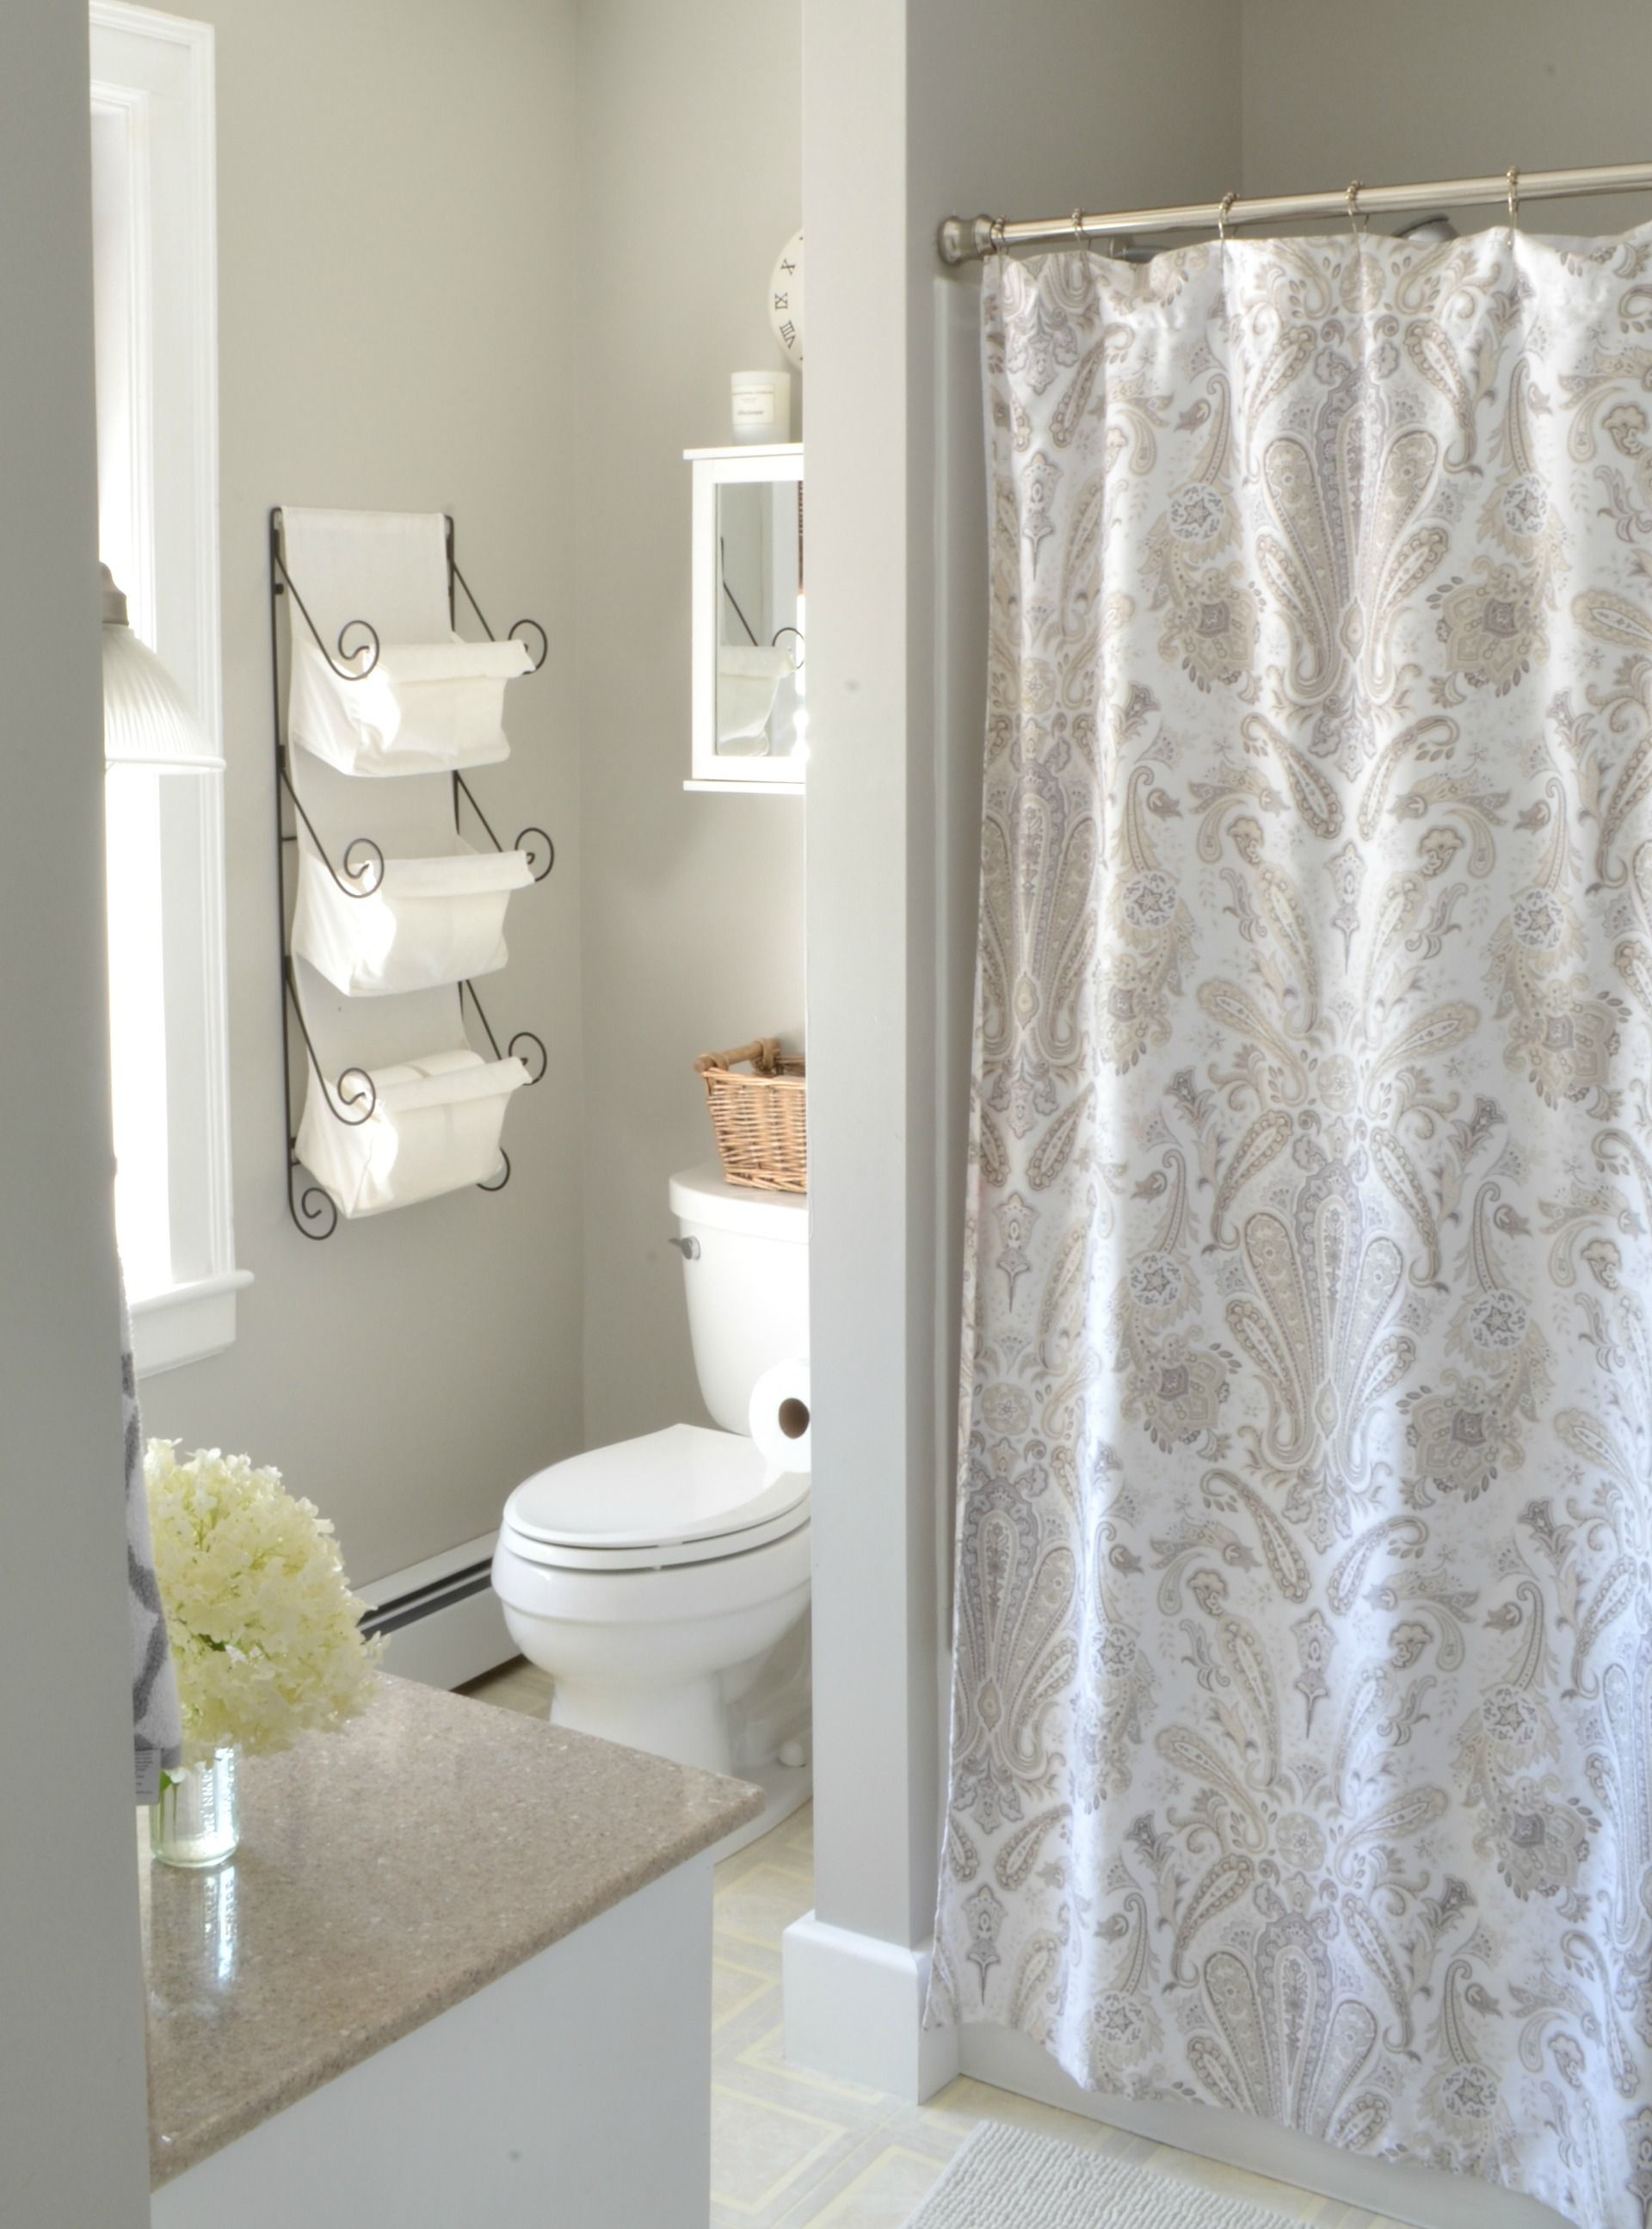 A great neutral color sherwin williams stone isle for Sherwin williams neutral colors